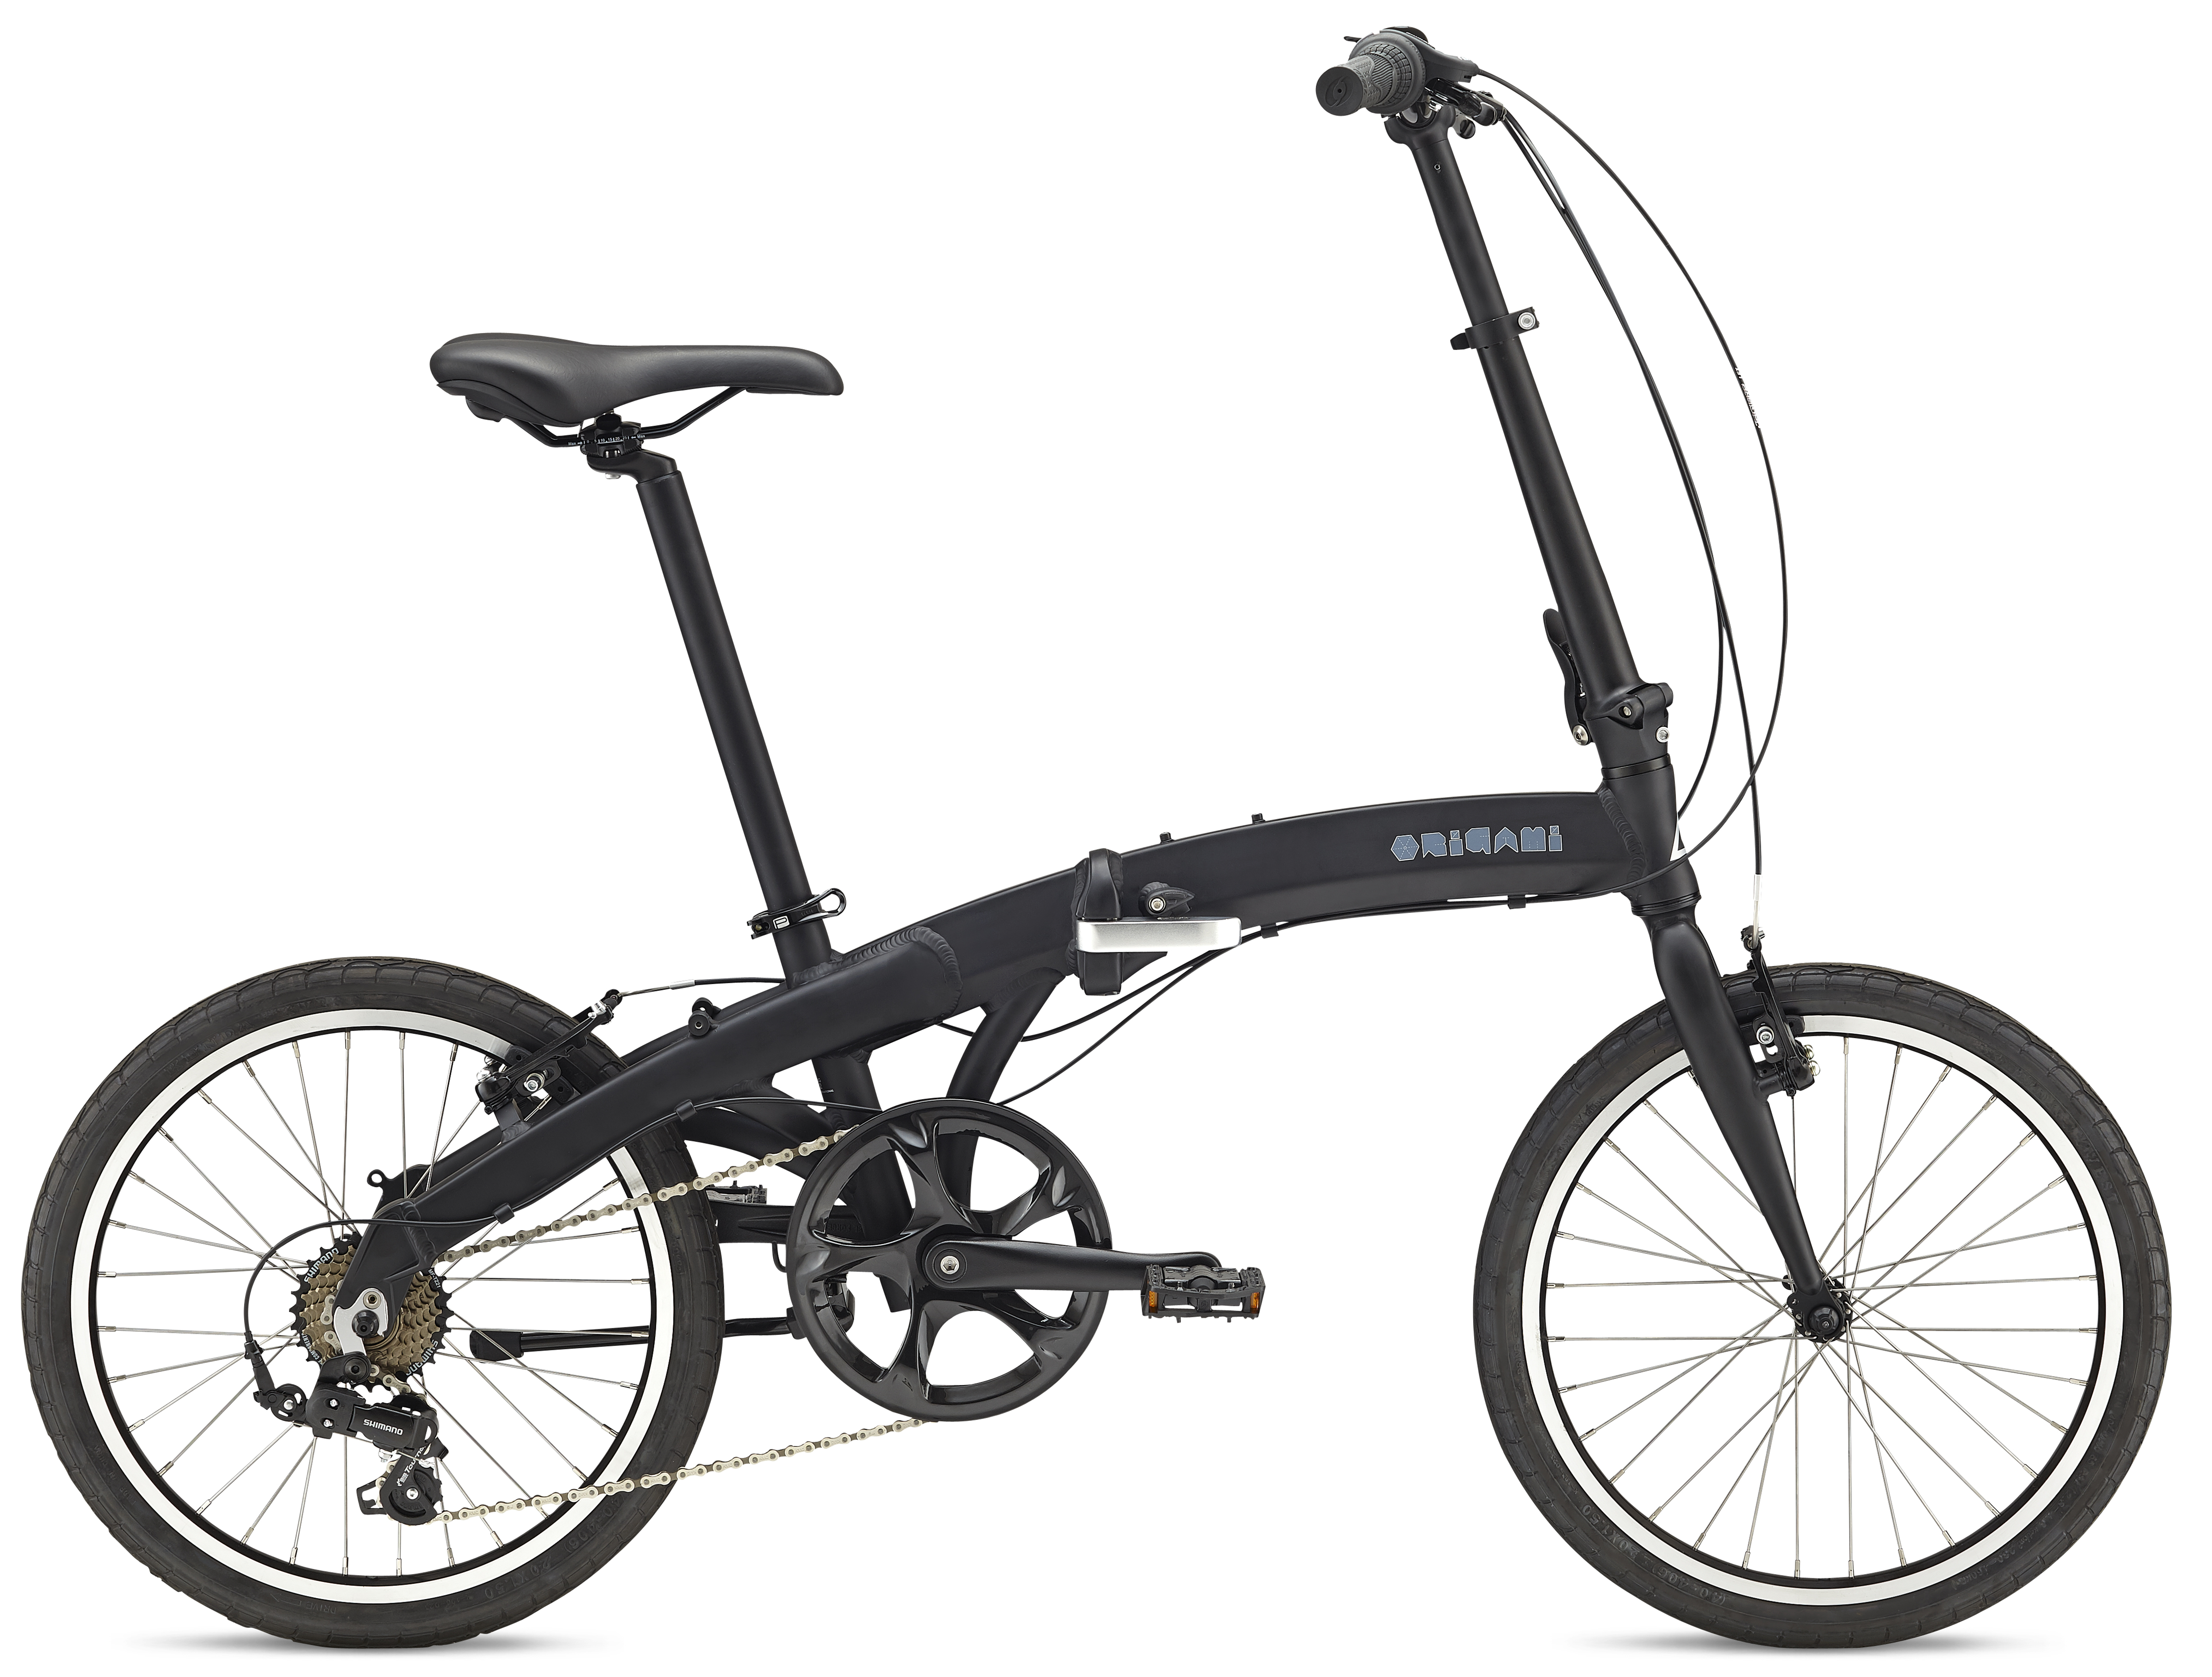 Bikes Fuji Oragami 1.3 Folding City Bike Shimano Equipped Image